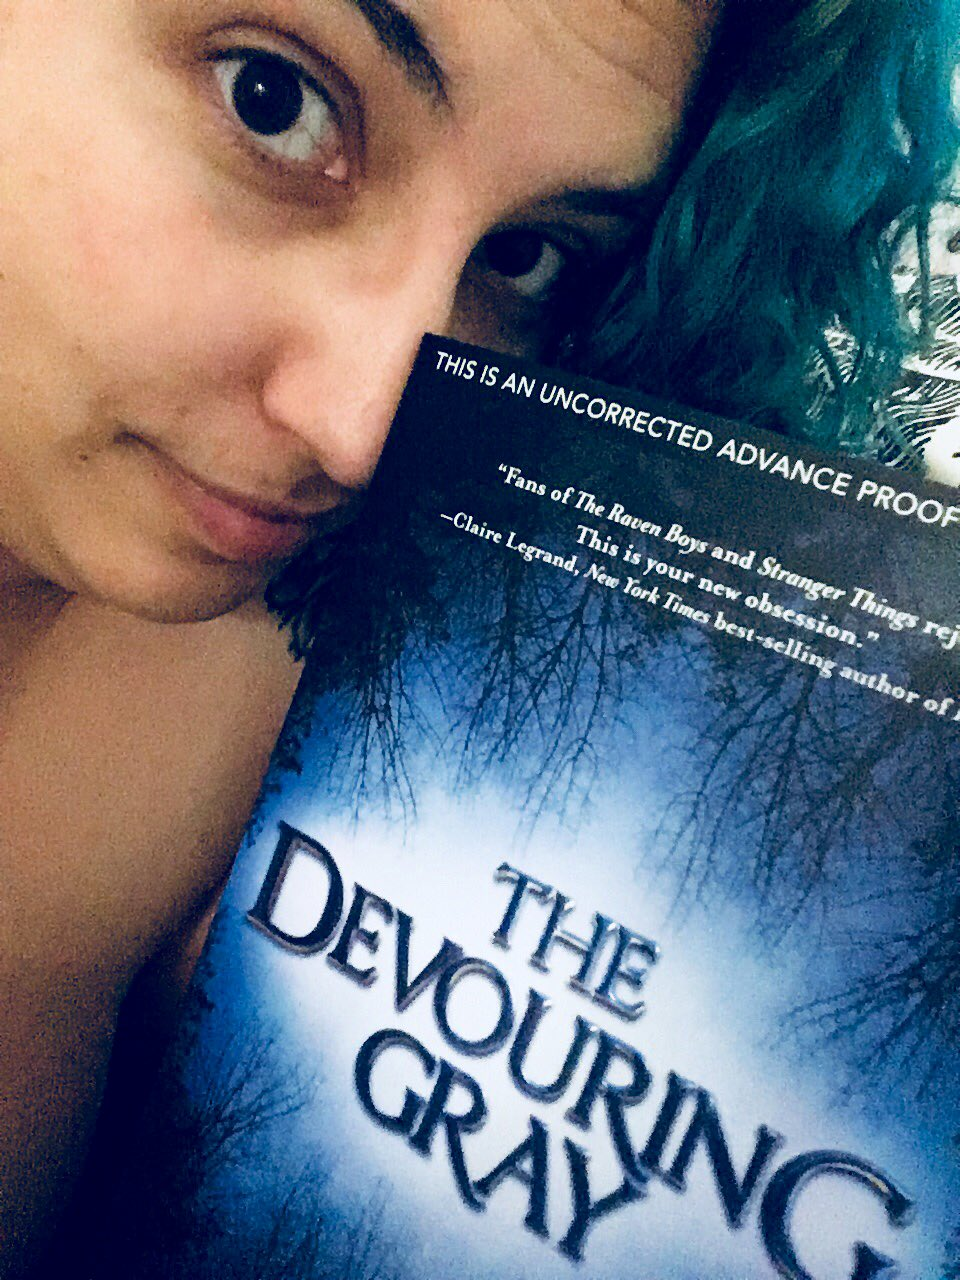 A selfie of me with green hair, holding a physical ARC of The Devouring Gray, by Christine Lynn Herman.